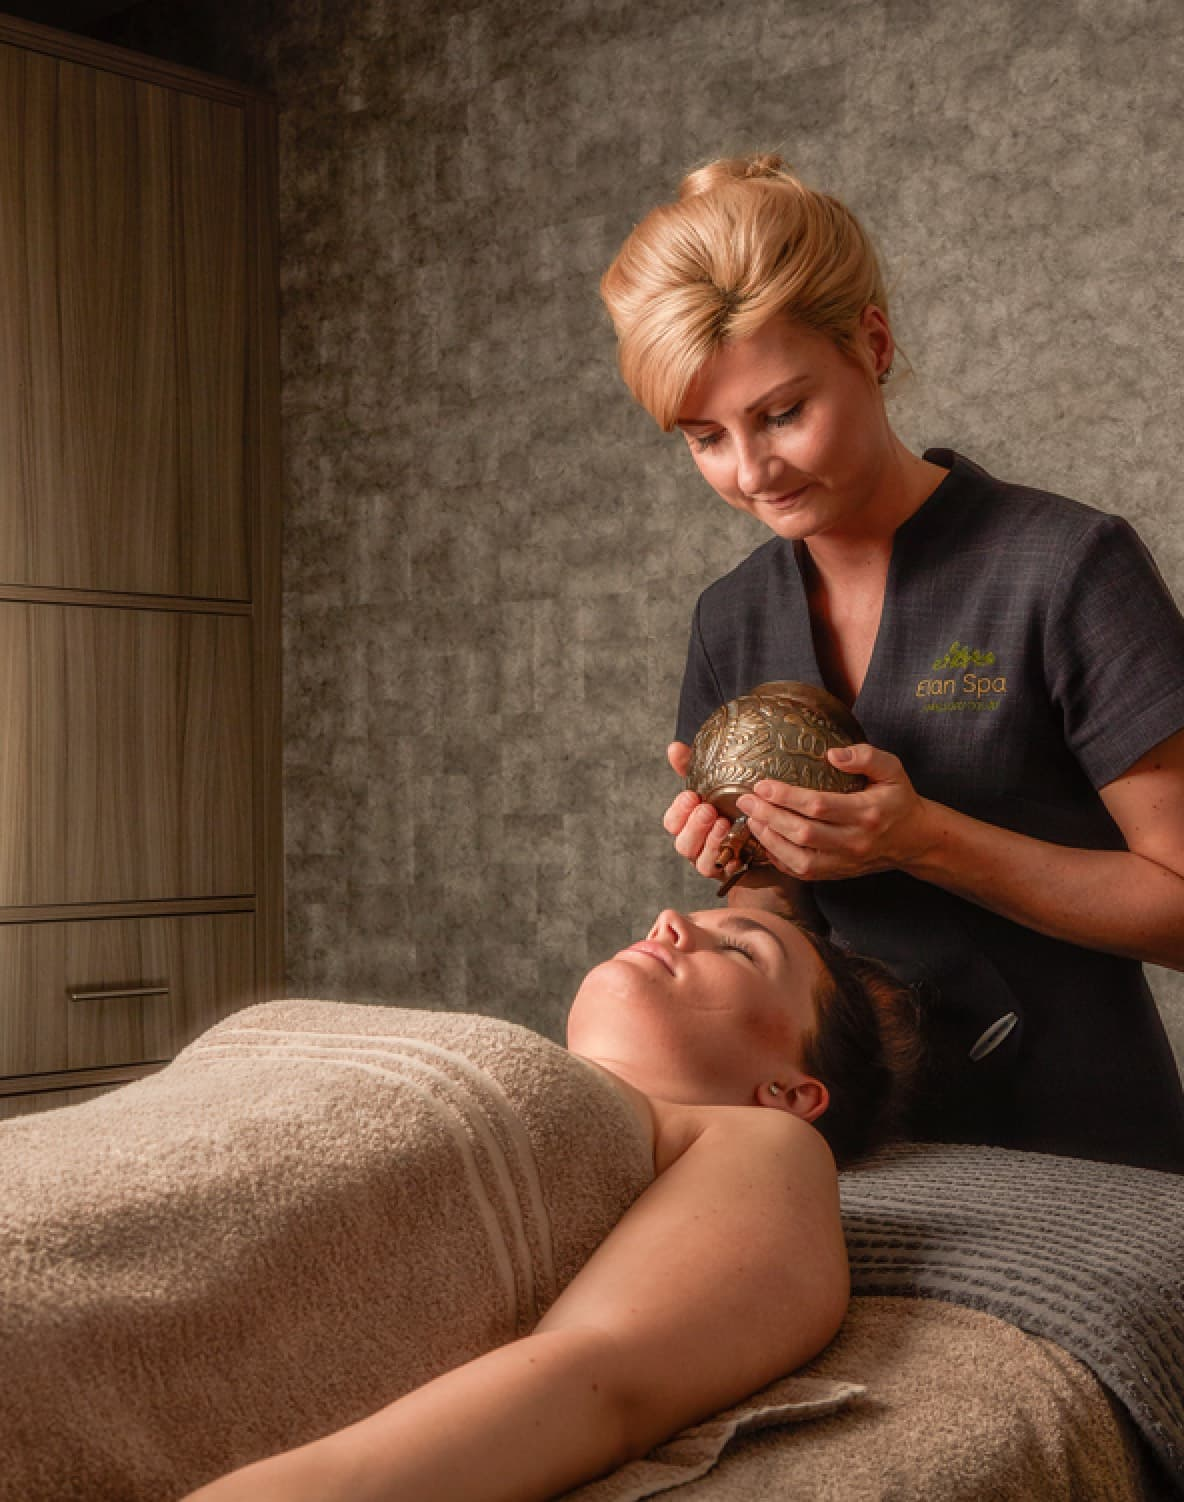 Relax and unwind in the Eden Hotel Collection's Elan Spa